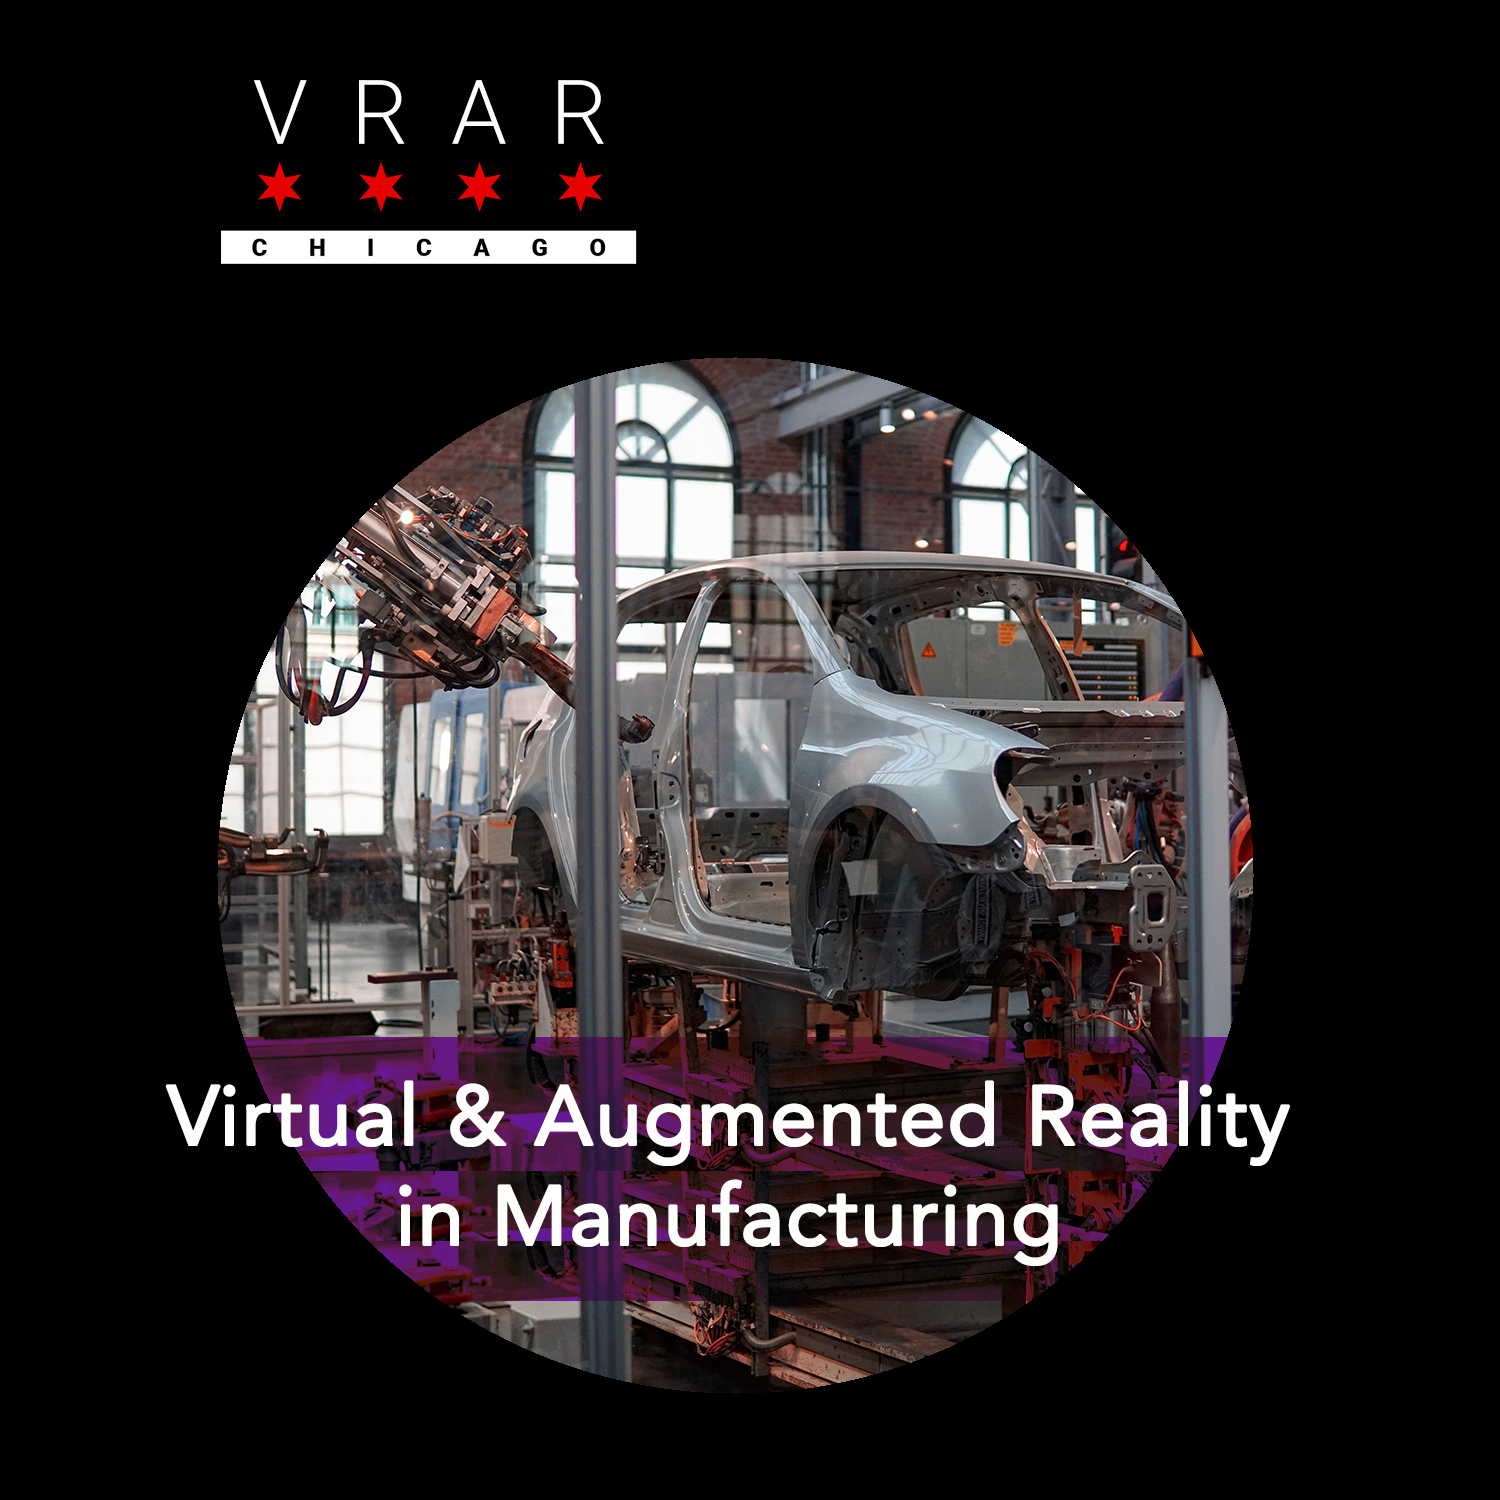 VR & AR: #TheNextEvolution in Manufacturing